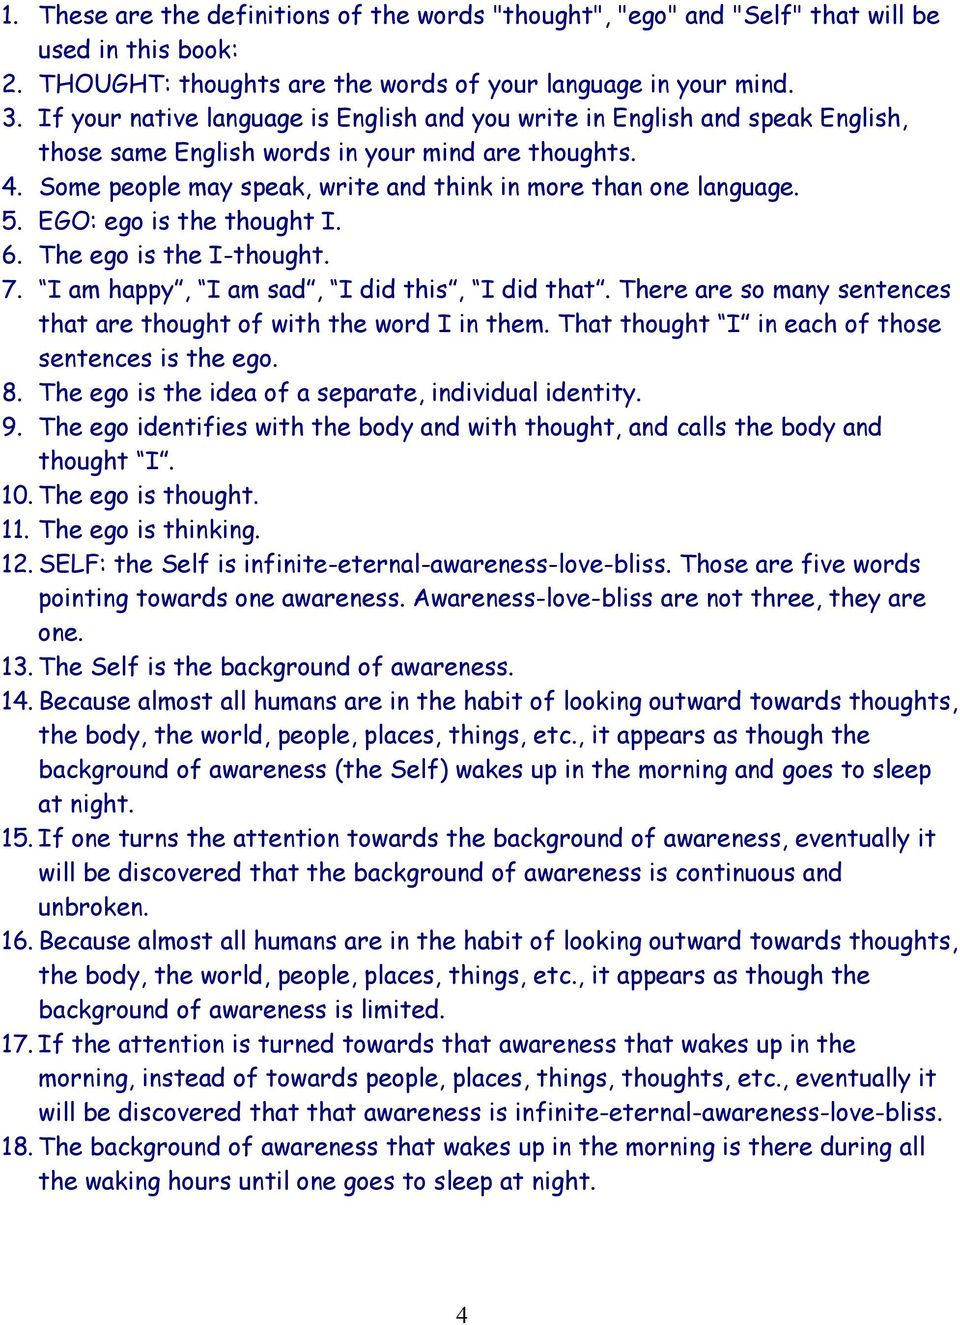 5. EGO: ego is the thought I. 6. The ego is the I-thought. 7. I am happy, I am sad, I did this, I did that. There are so many sentences that are thought of with the word I in them.